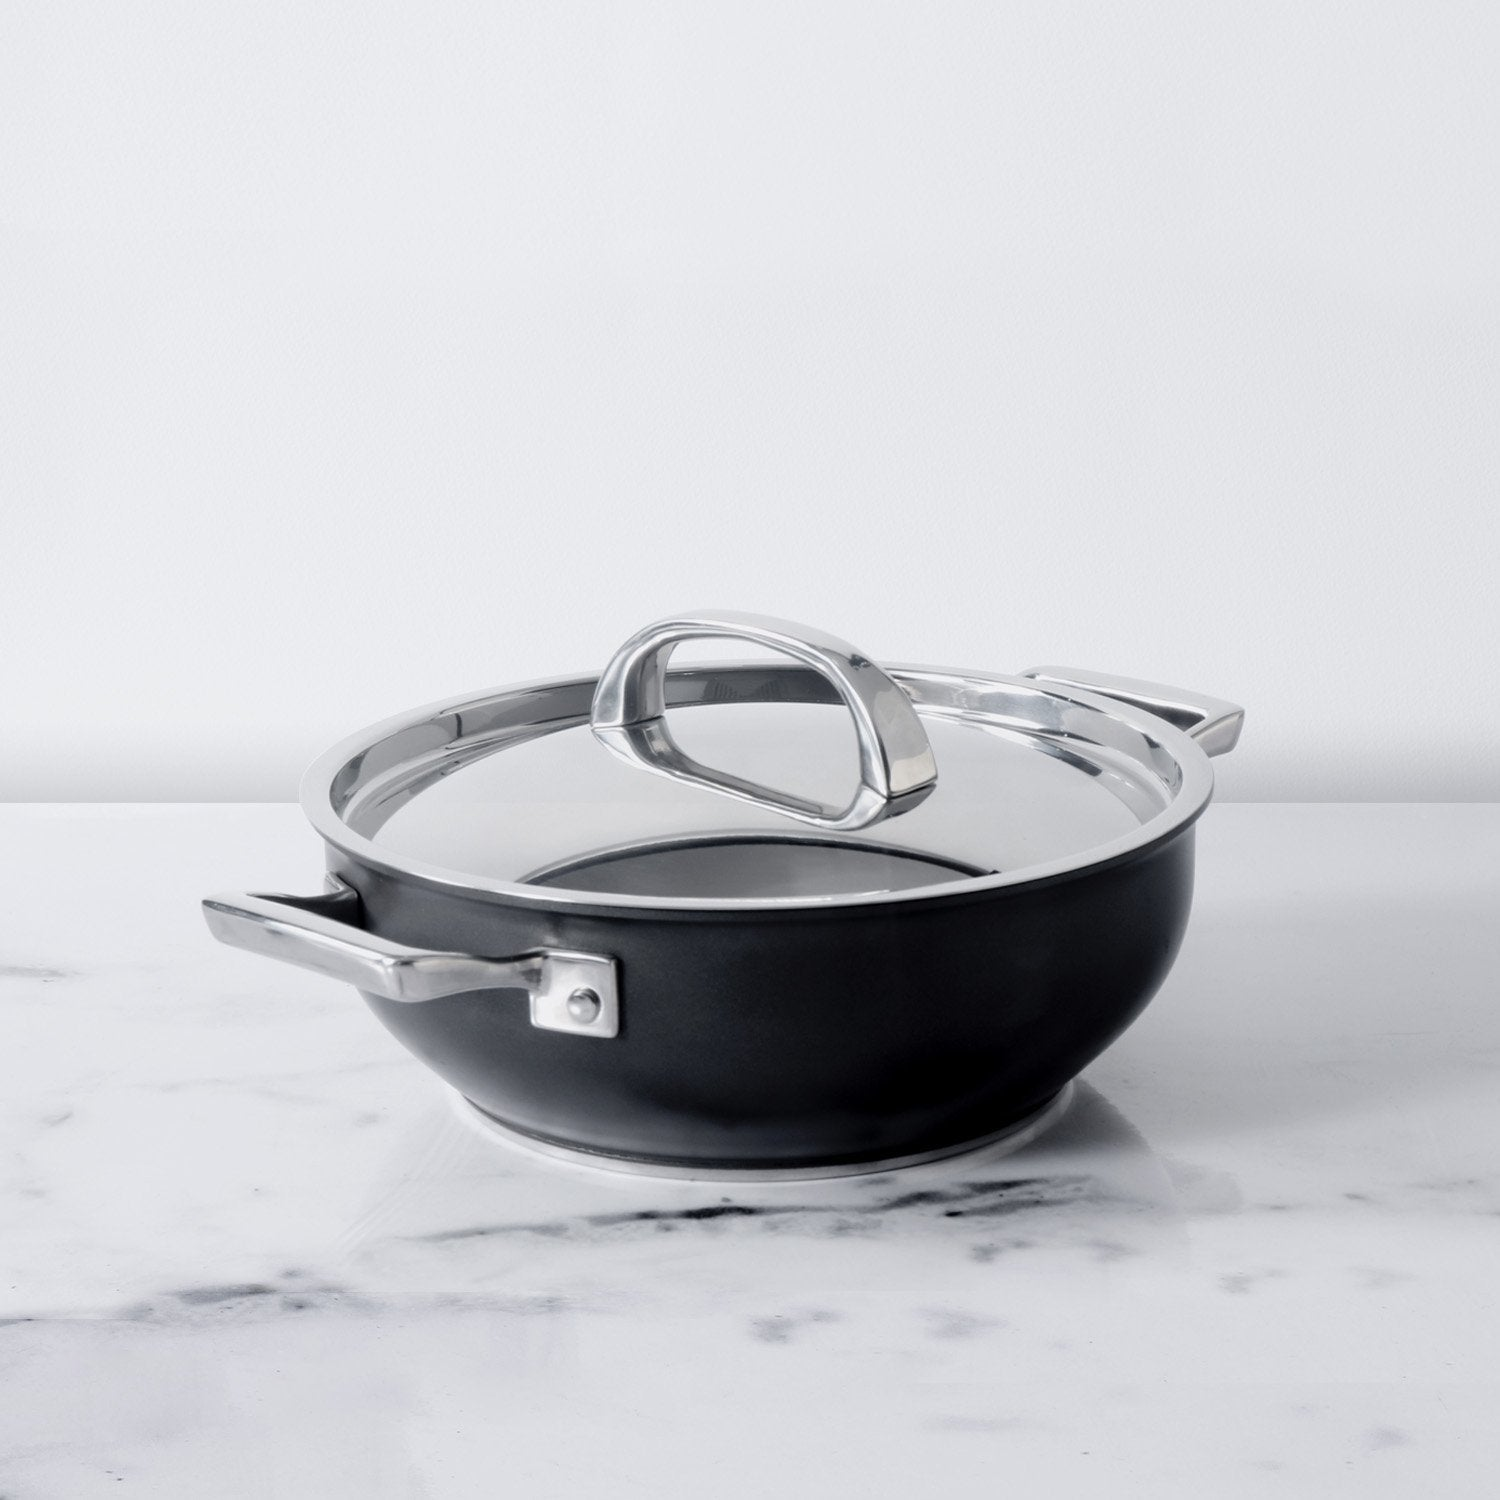 Infinite Non-Stick + Hard Anodized Chef's Casserole/Biryani Pot 4.3L/26cm (Gas & Induction Compatible)